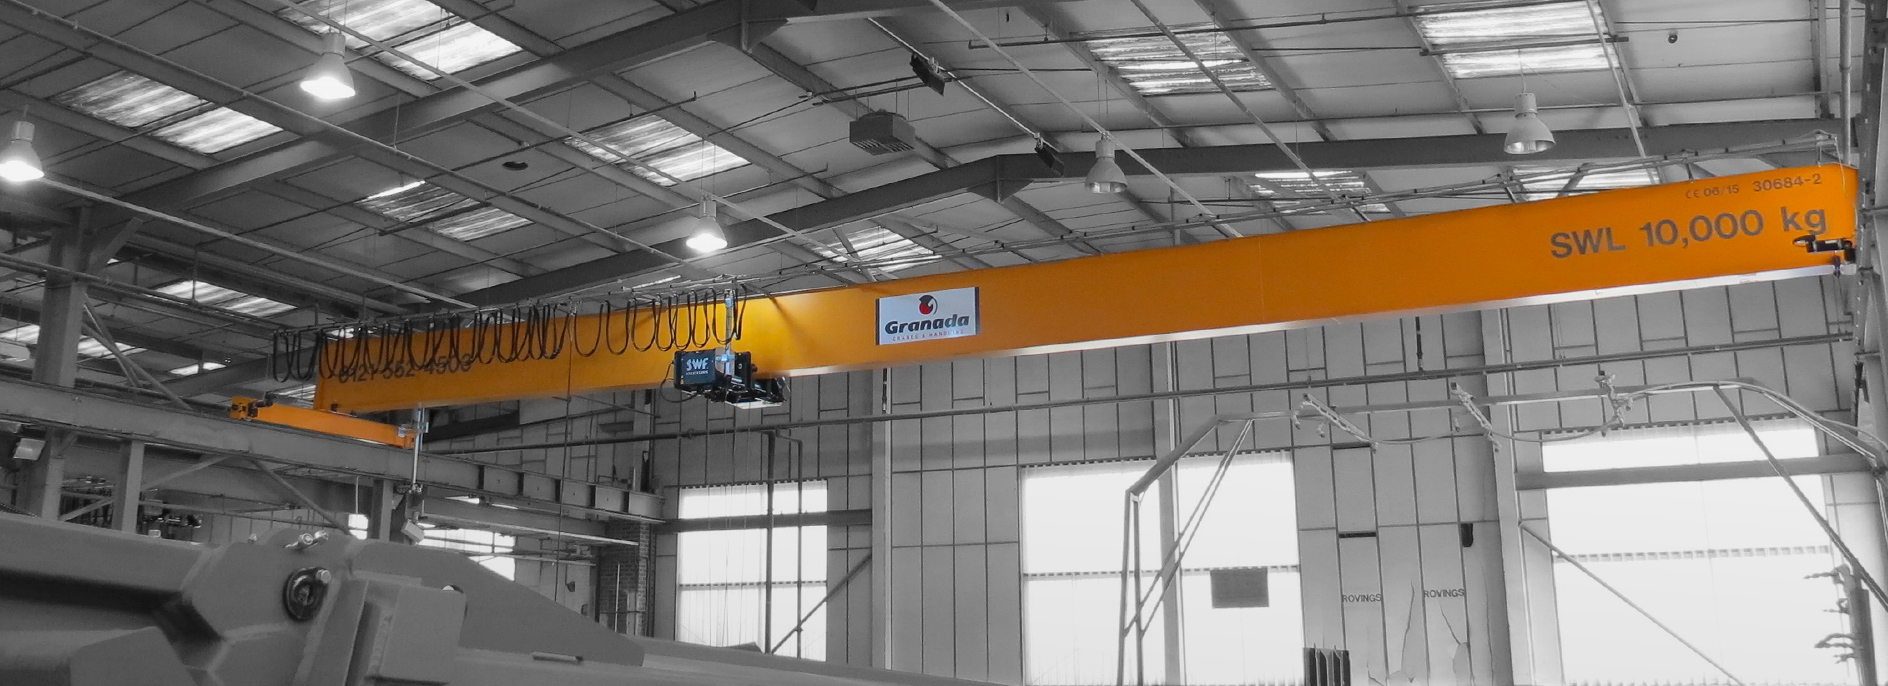 10 tonne Overhead Crane system by Granada Cranes and Handling